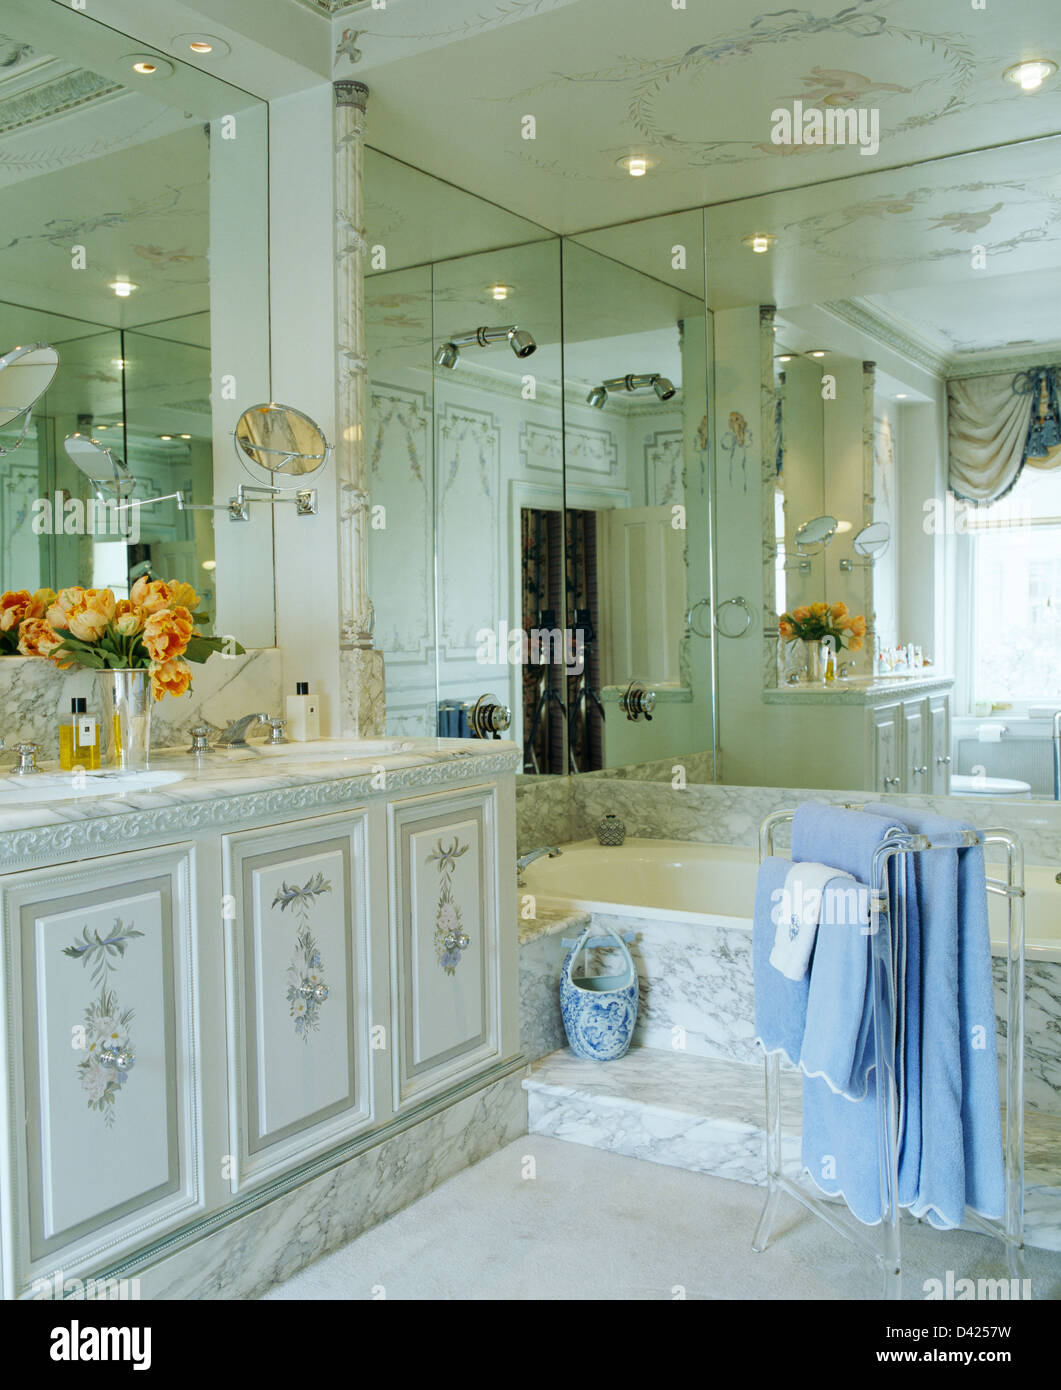 Mirrored Walls And Marble Paneled Bath In Townhouse Bathroom With Pale Blue  Towels On Steel Towel Rail Part 38